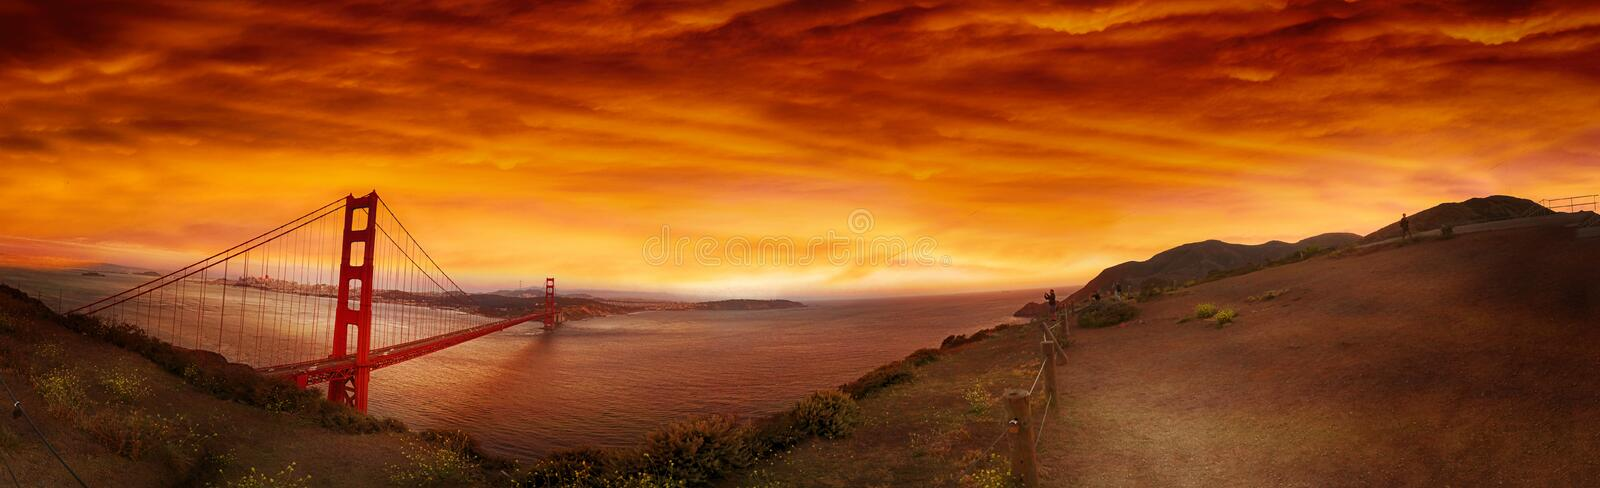 Golden gate bridge, San Francisco, Kalifornien bei Sonnenuntergang stockbild